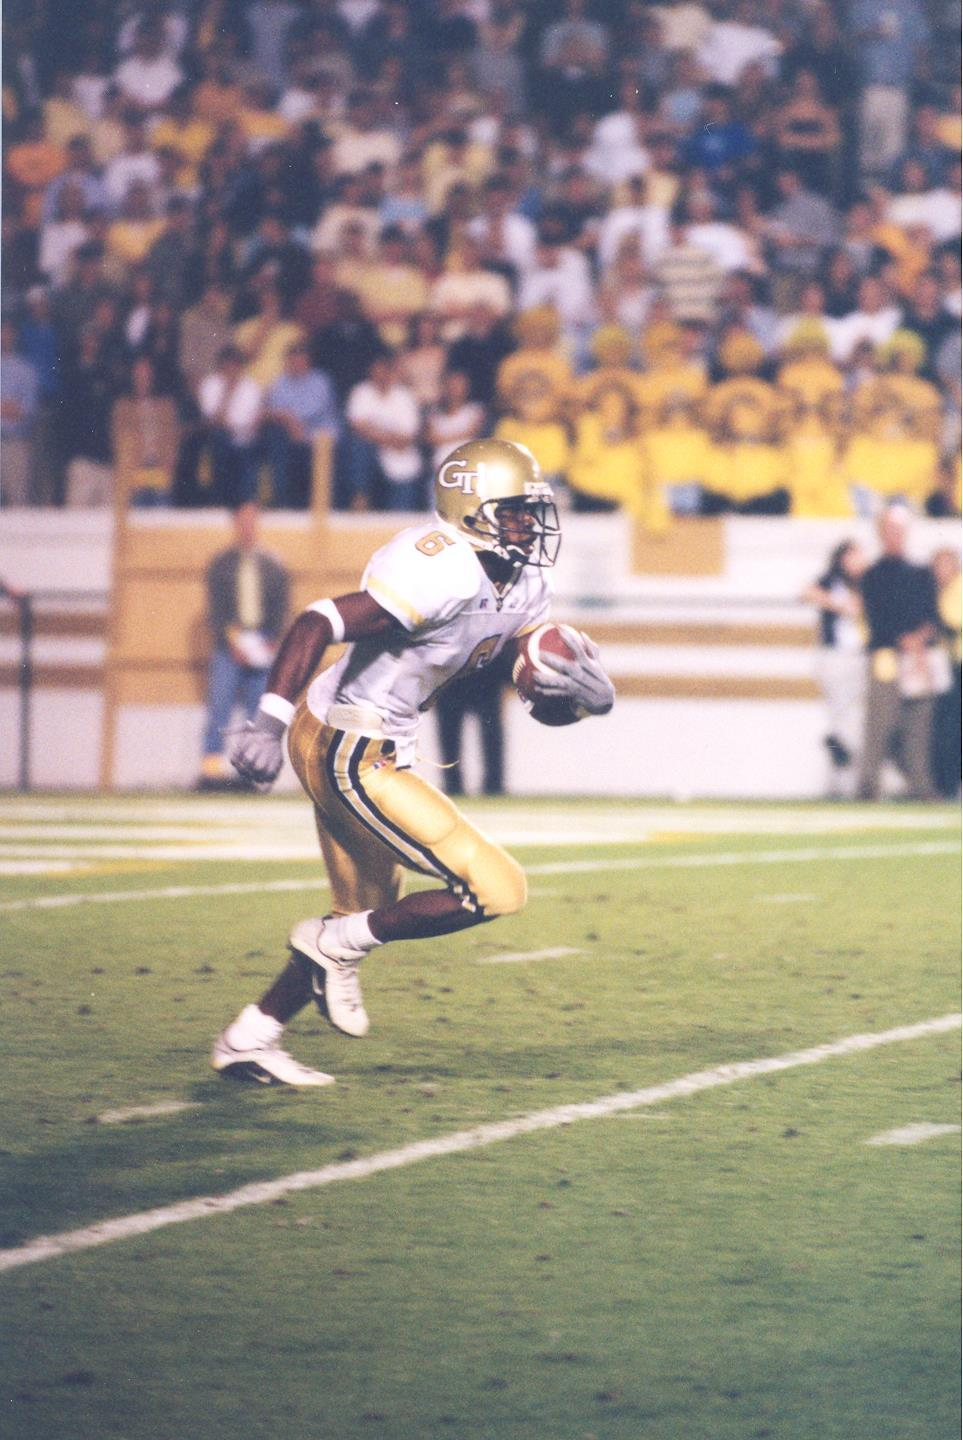 Kelly Campbell - 2013 Georgia Tech Hall of Fame class